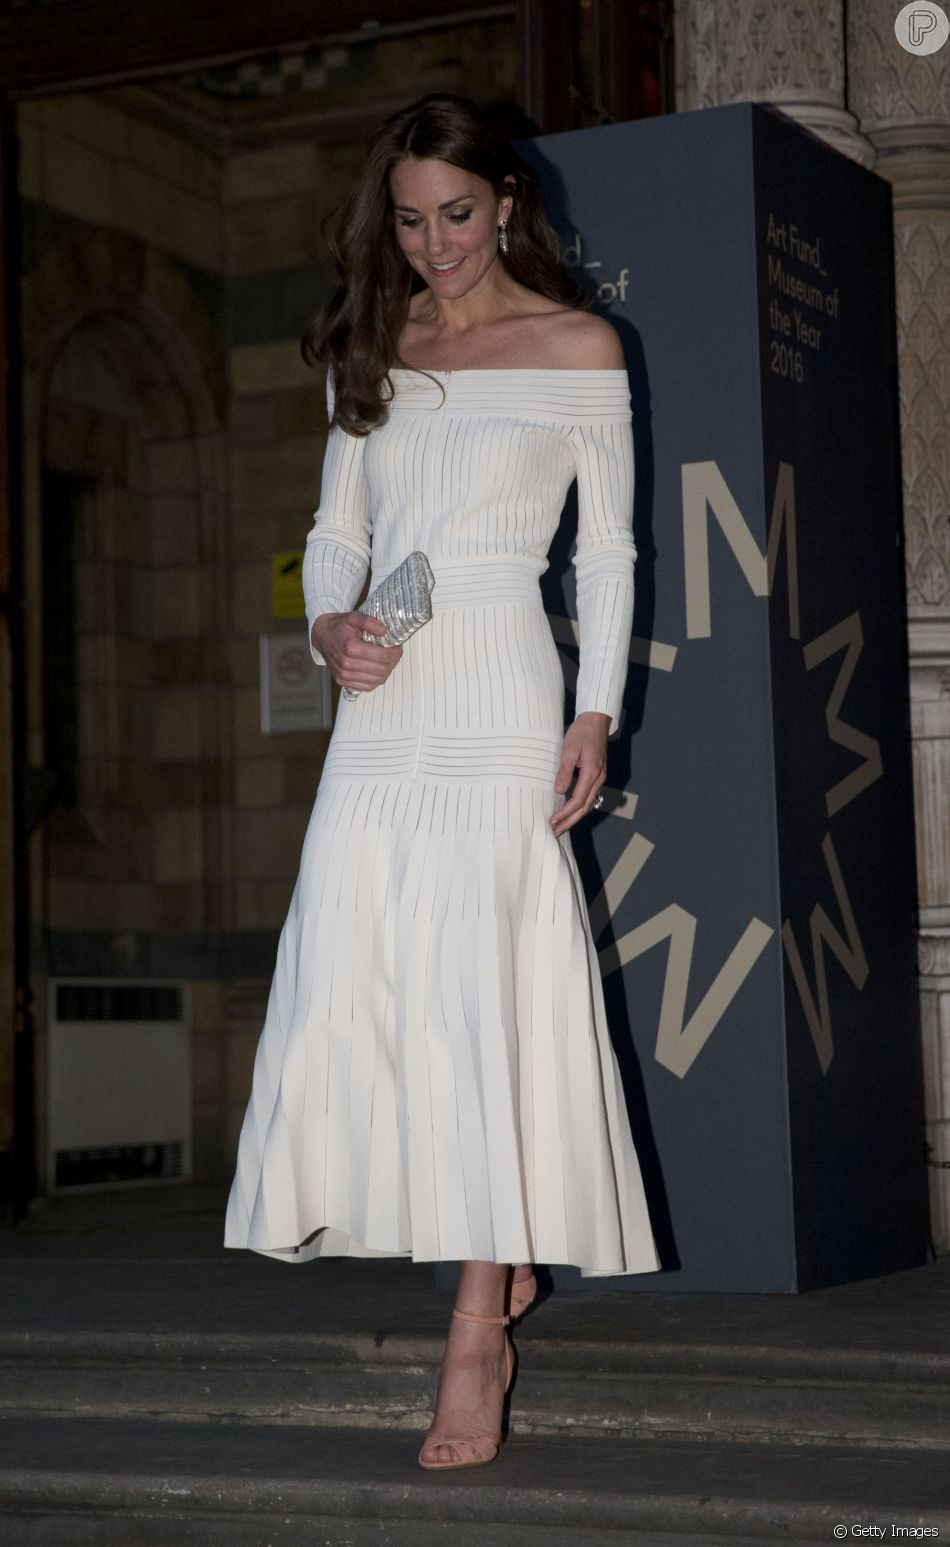 A Duquesa de Cambridge Kate Middleton usa vestido Barbara Casasola e sandálias Schutz.